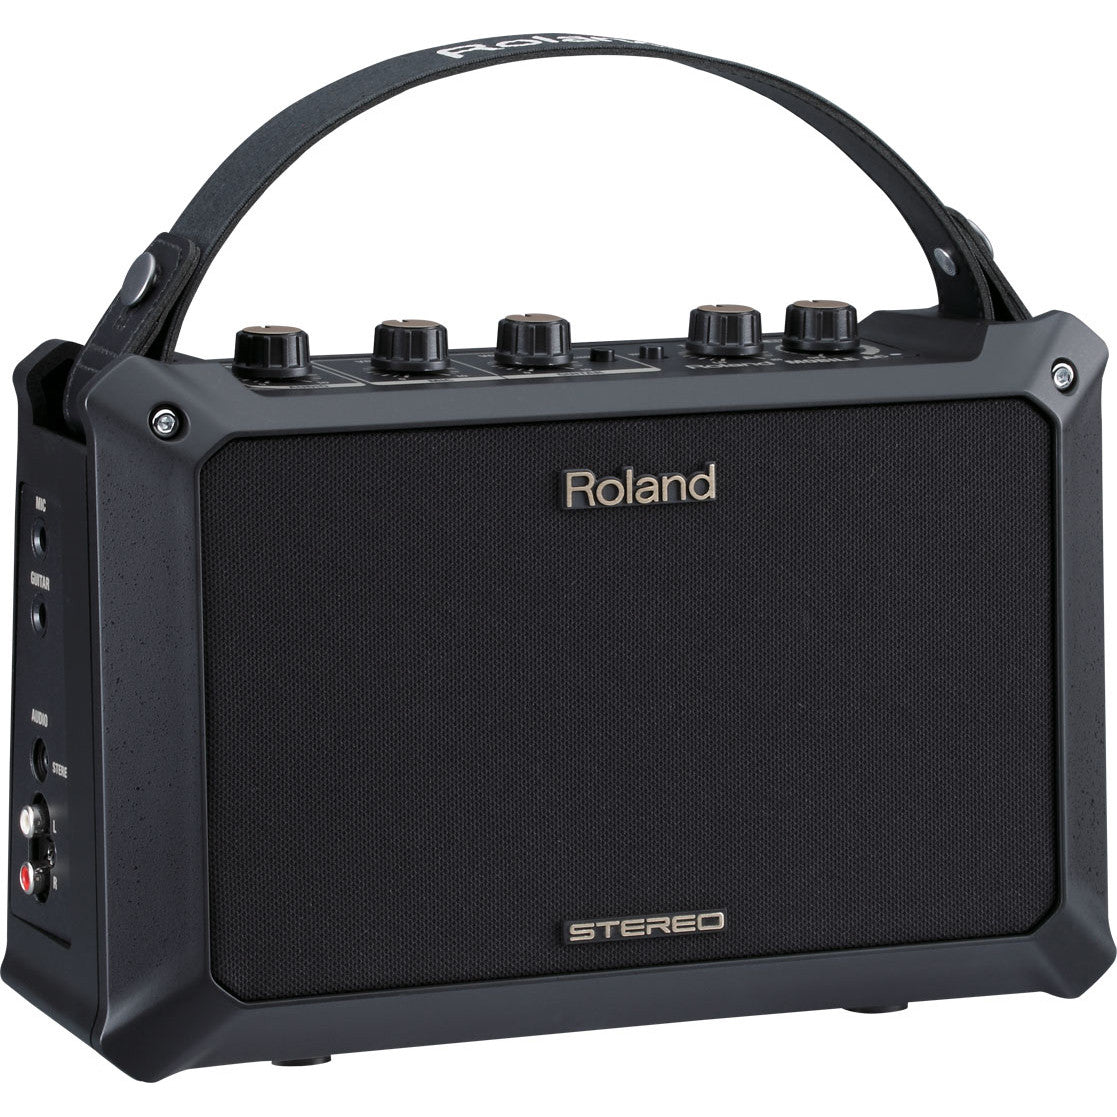 roland mobile ac battery power acoustic portable guitar amp. Black Bedroom Furniture Sets. Home Design Ideas